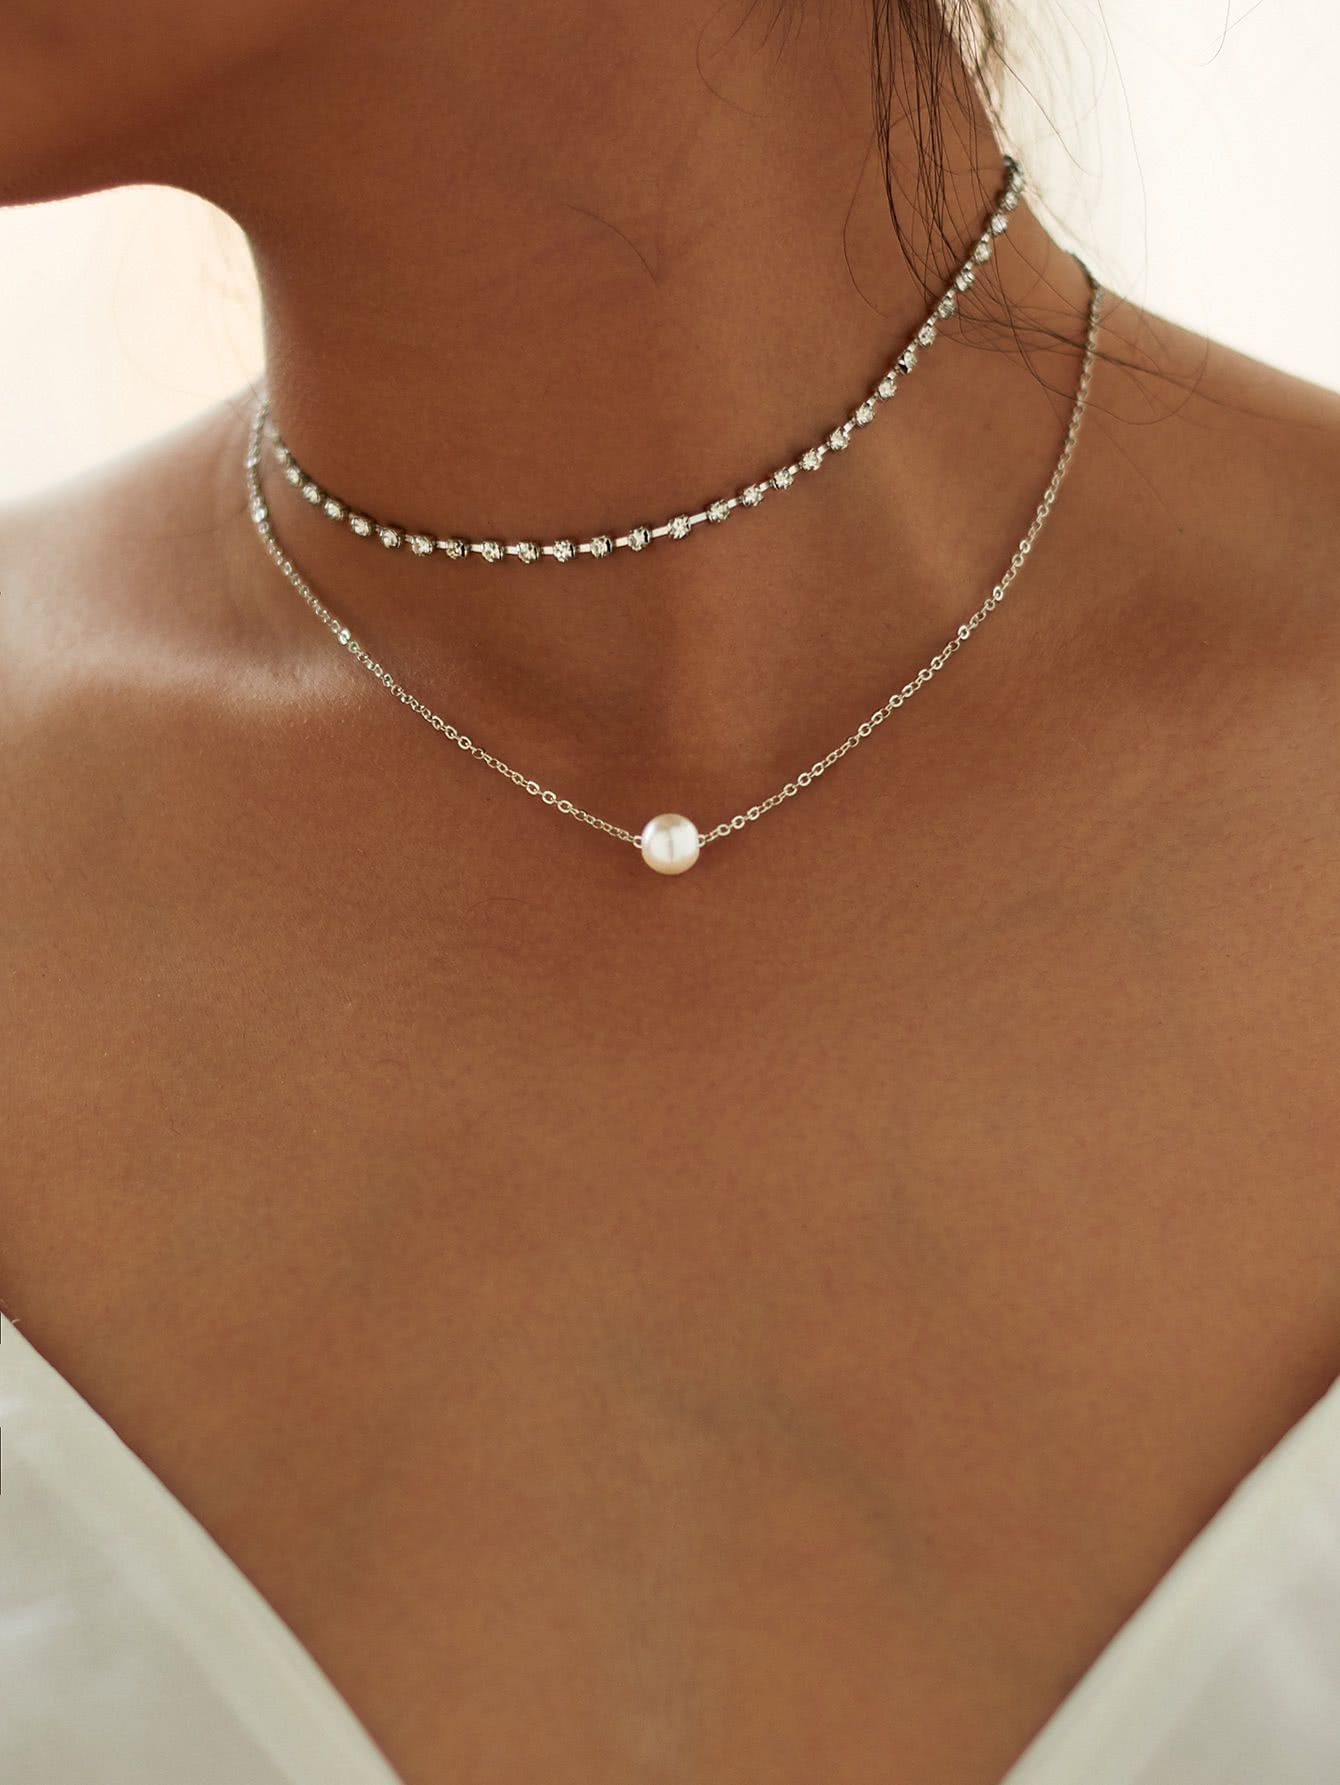 2pcs Womens Infinity Choker Necklace Gold and Silver Colour Chain Pendant Charm